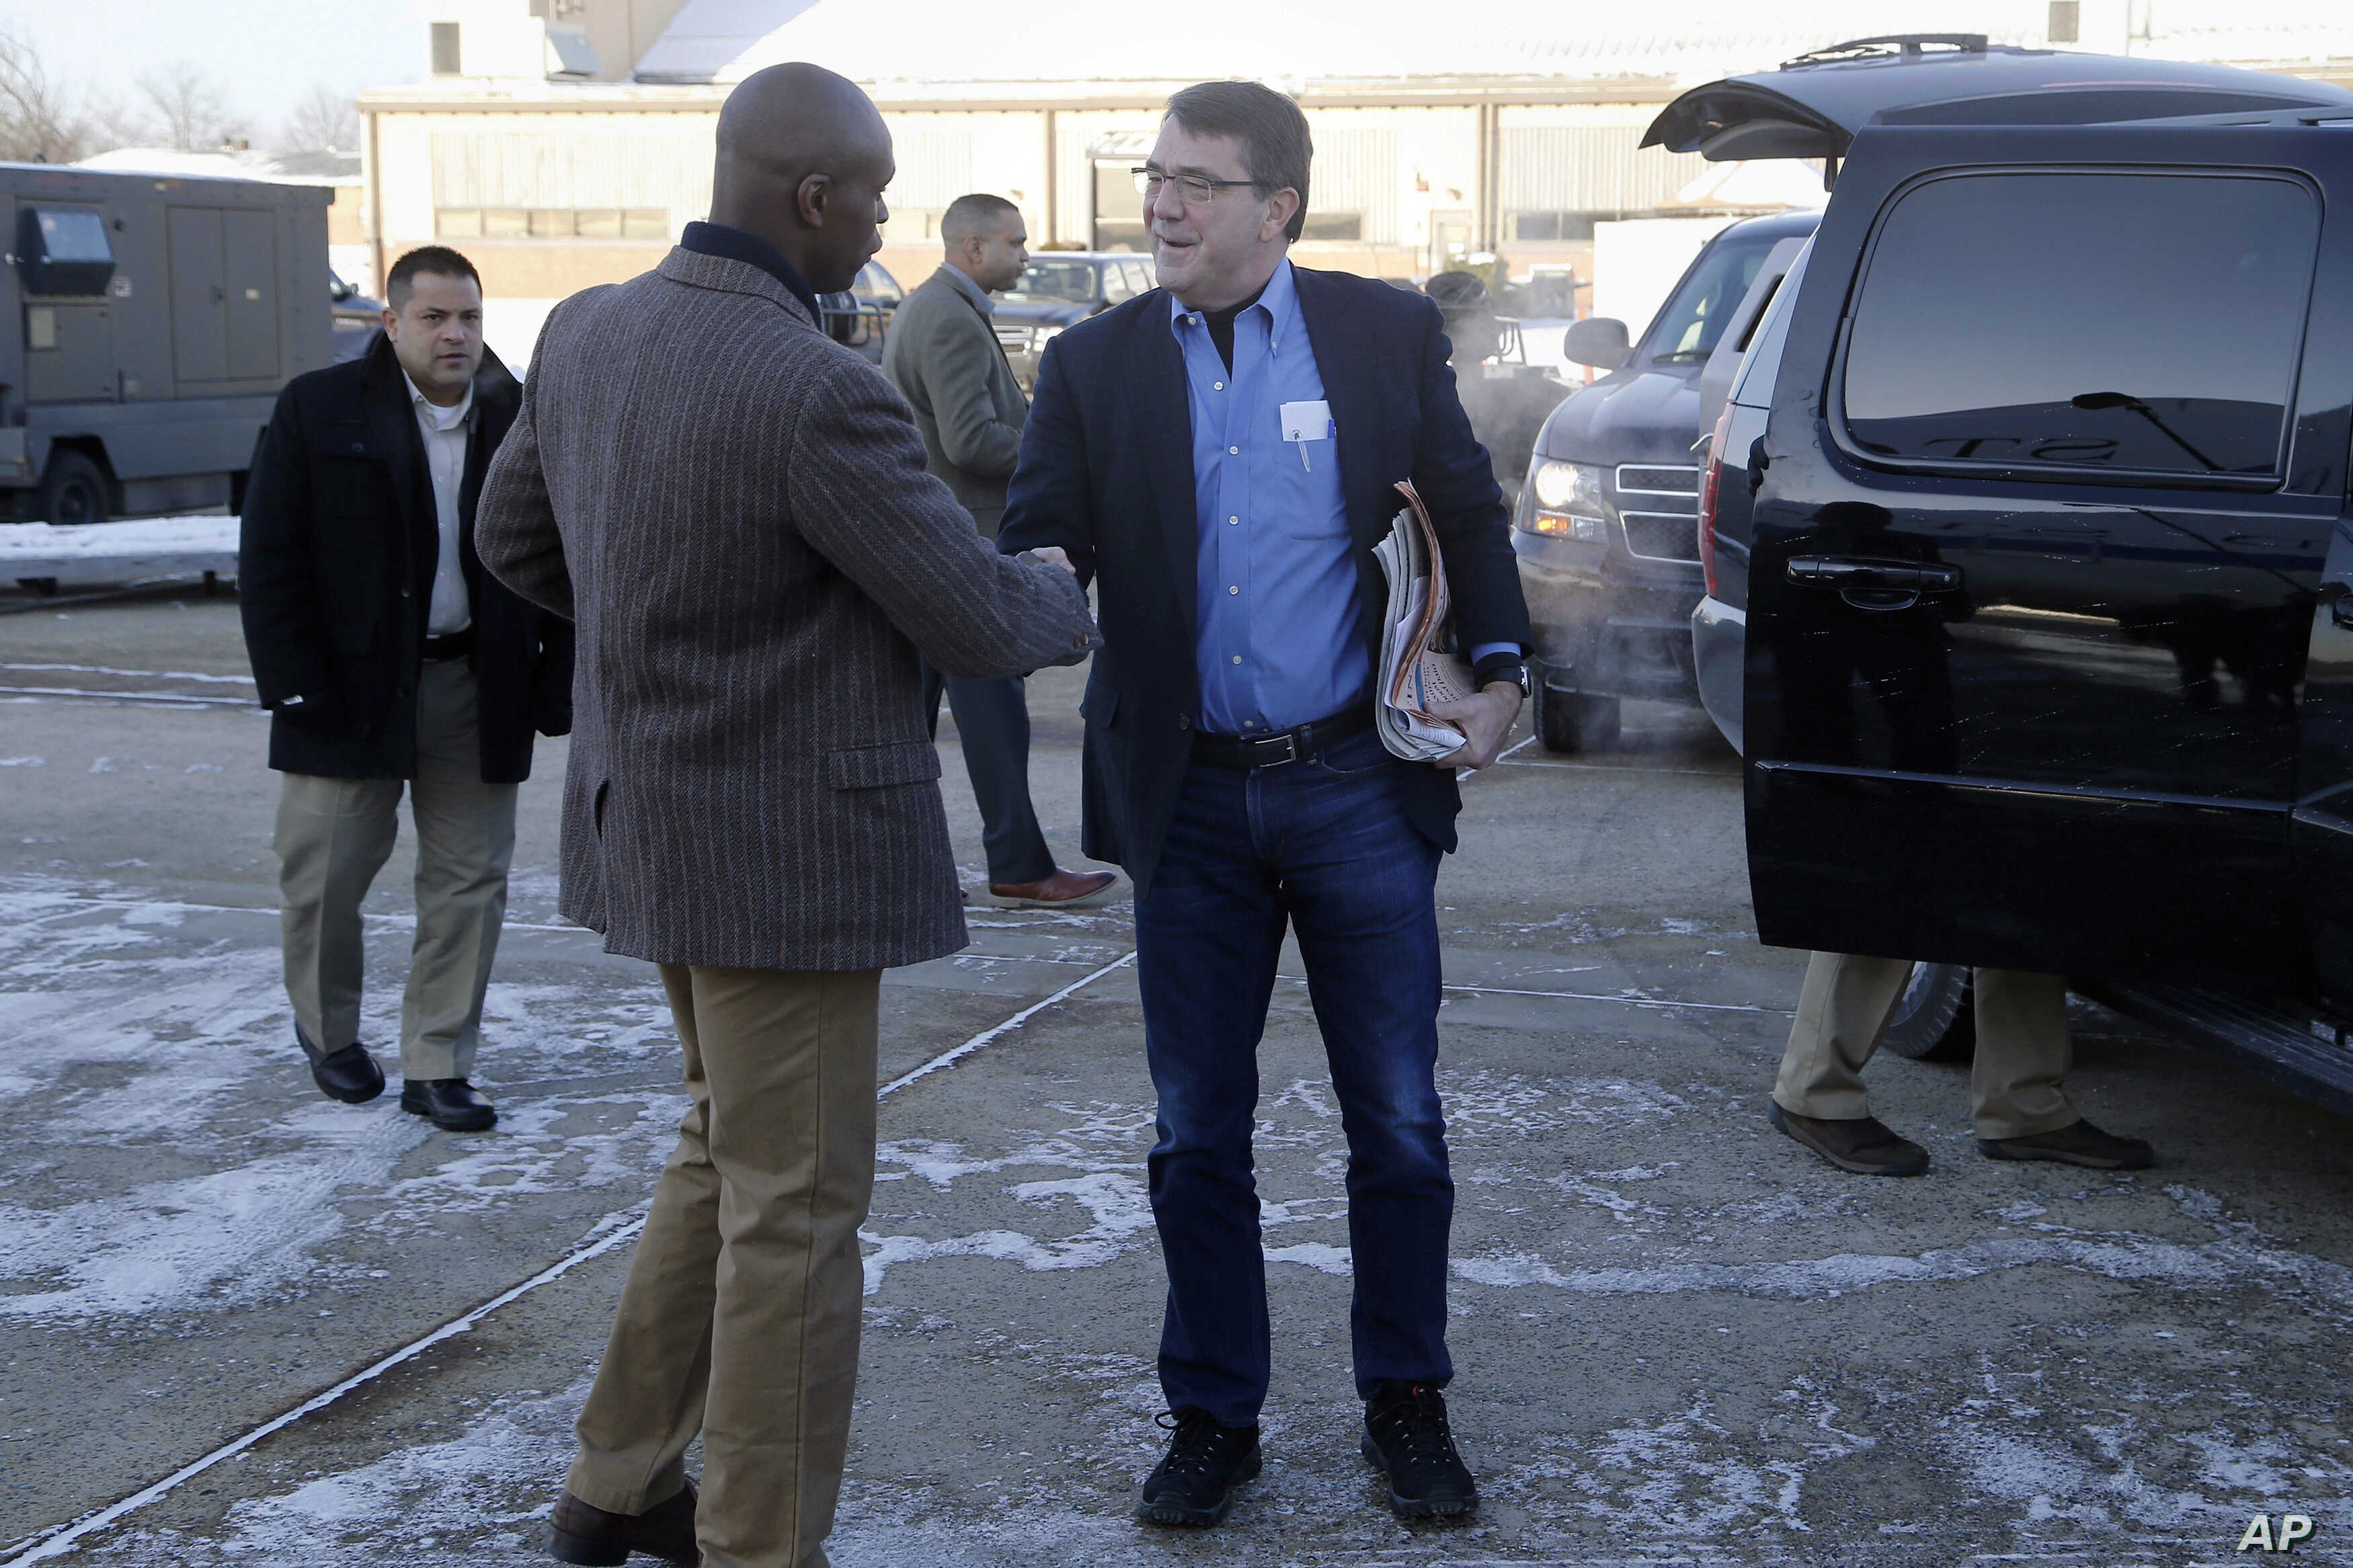 Pentagon Military Aide Investigation: FILE - In this Feb. 20, 2015, file photo, U.S. Secretary of Defense Ash Carter, center, is greeted by Senior Military Assistant U.S. Army Maj. Gen. Ron Lewis as they arrive at Andrews Air Force Base, Md., to trav